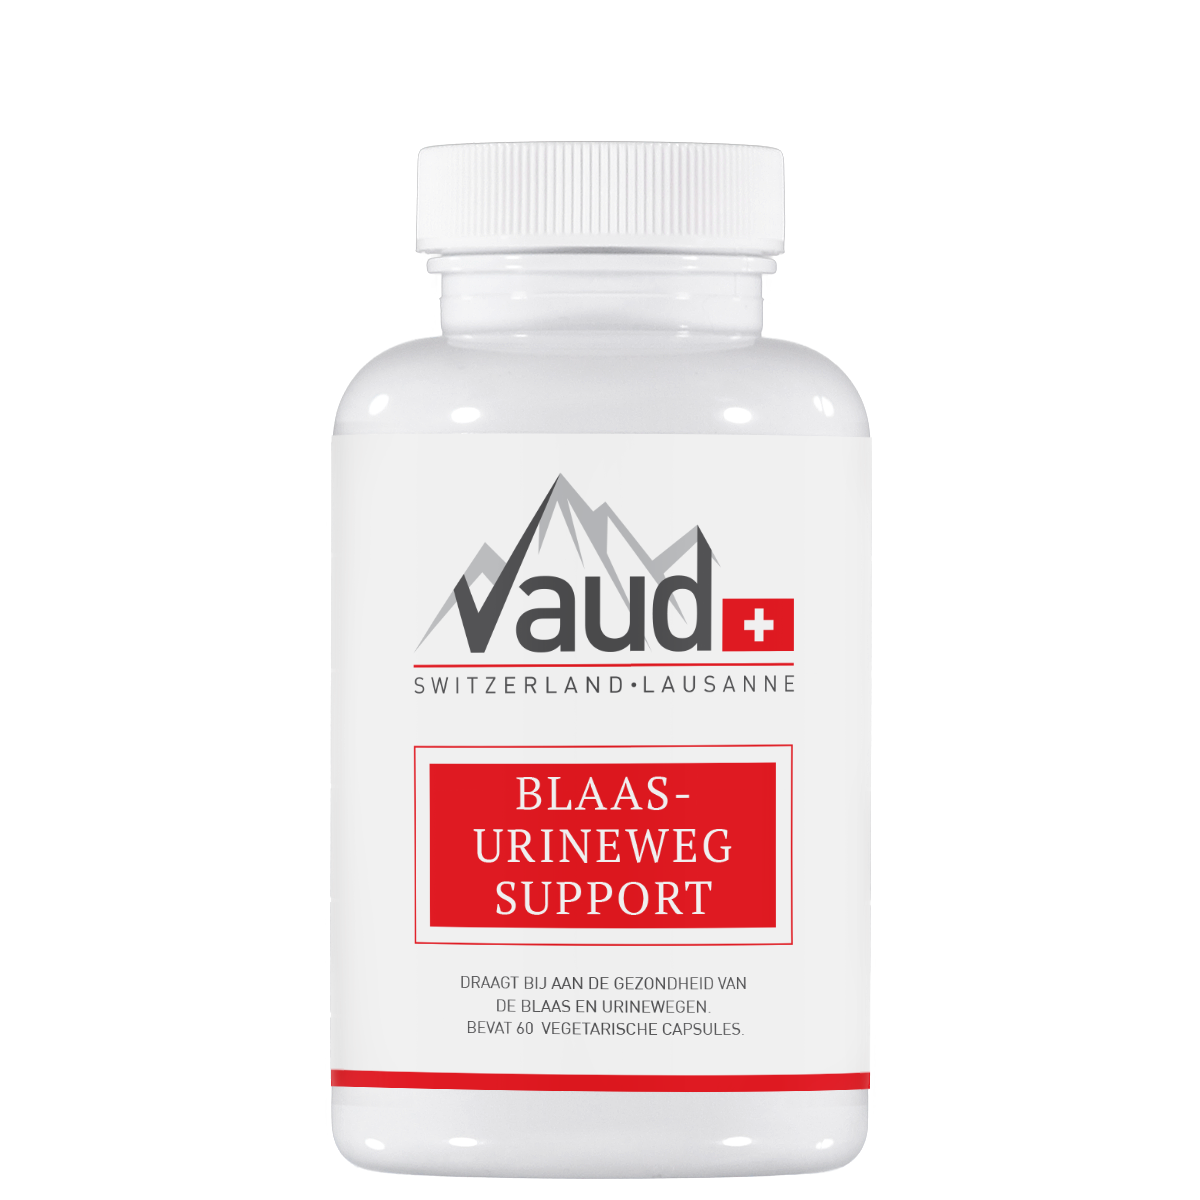 blaas urineweg support supplement